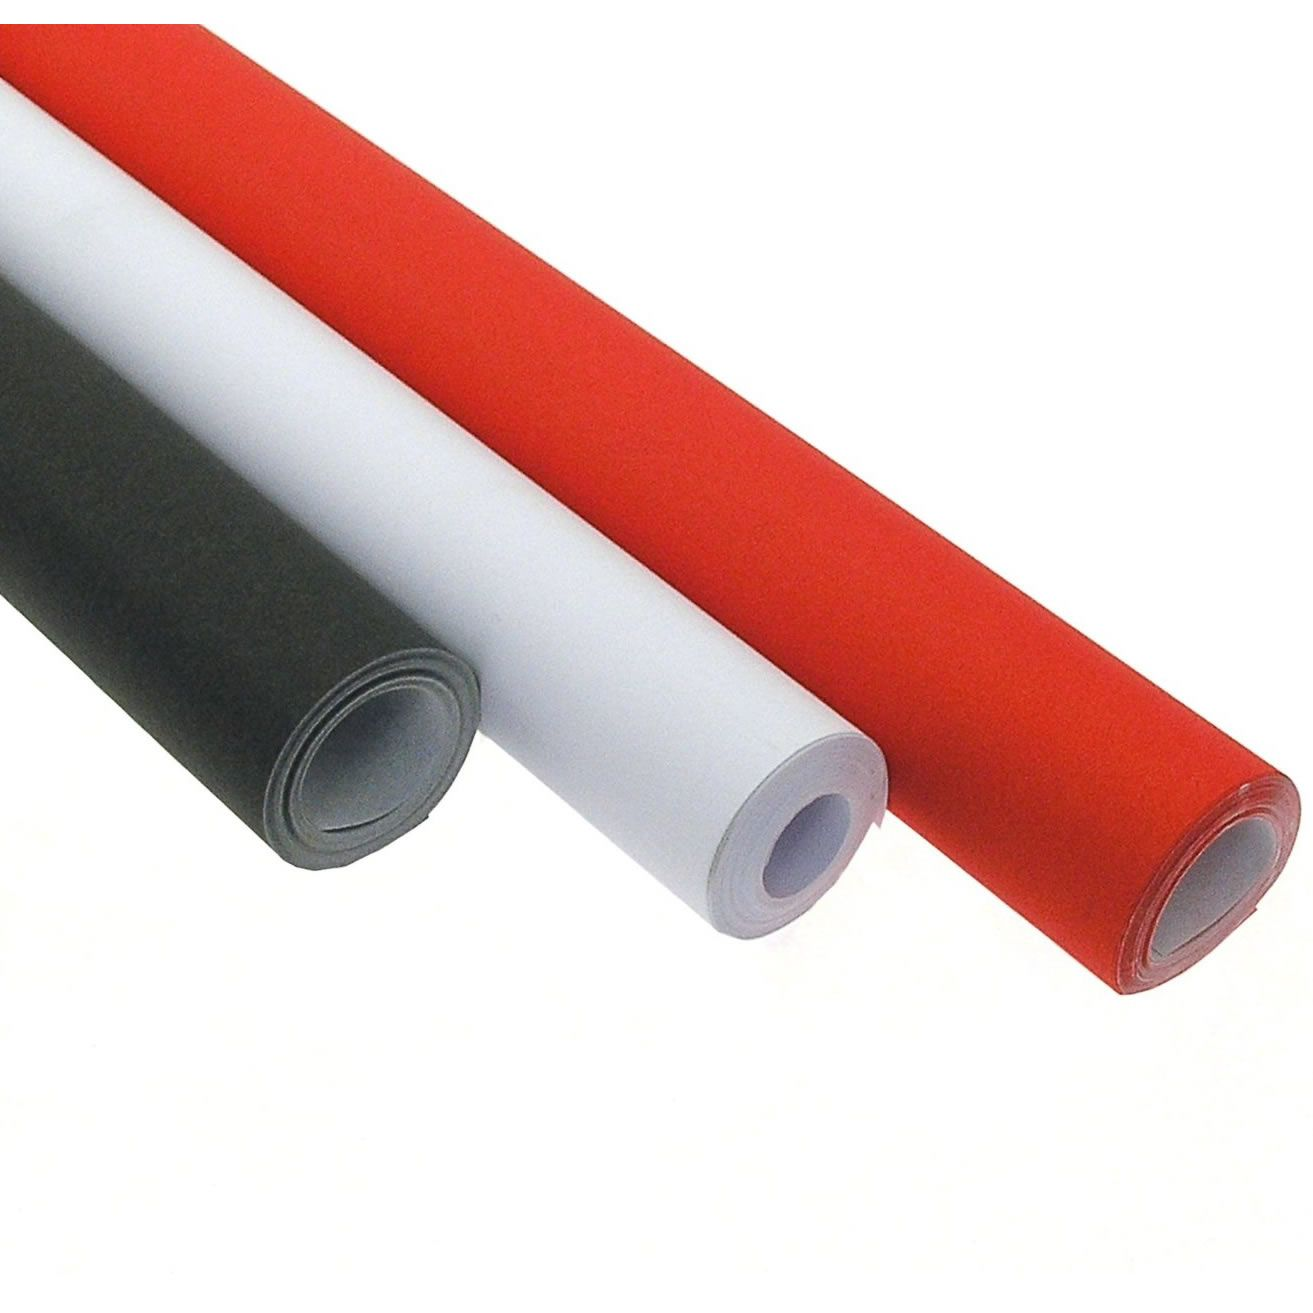 Poster Roll 10m Selection Red, White & Black